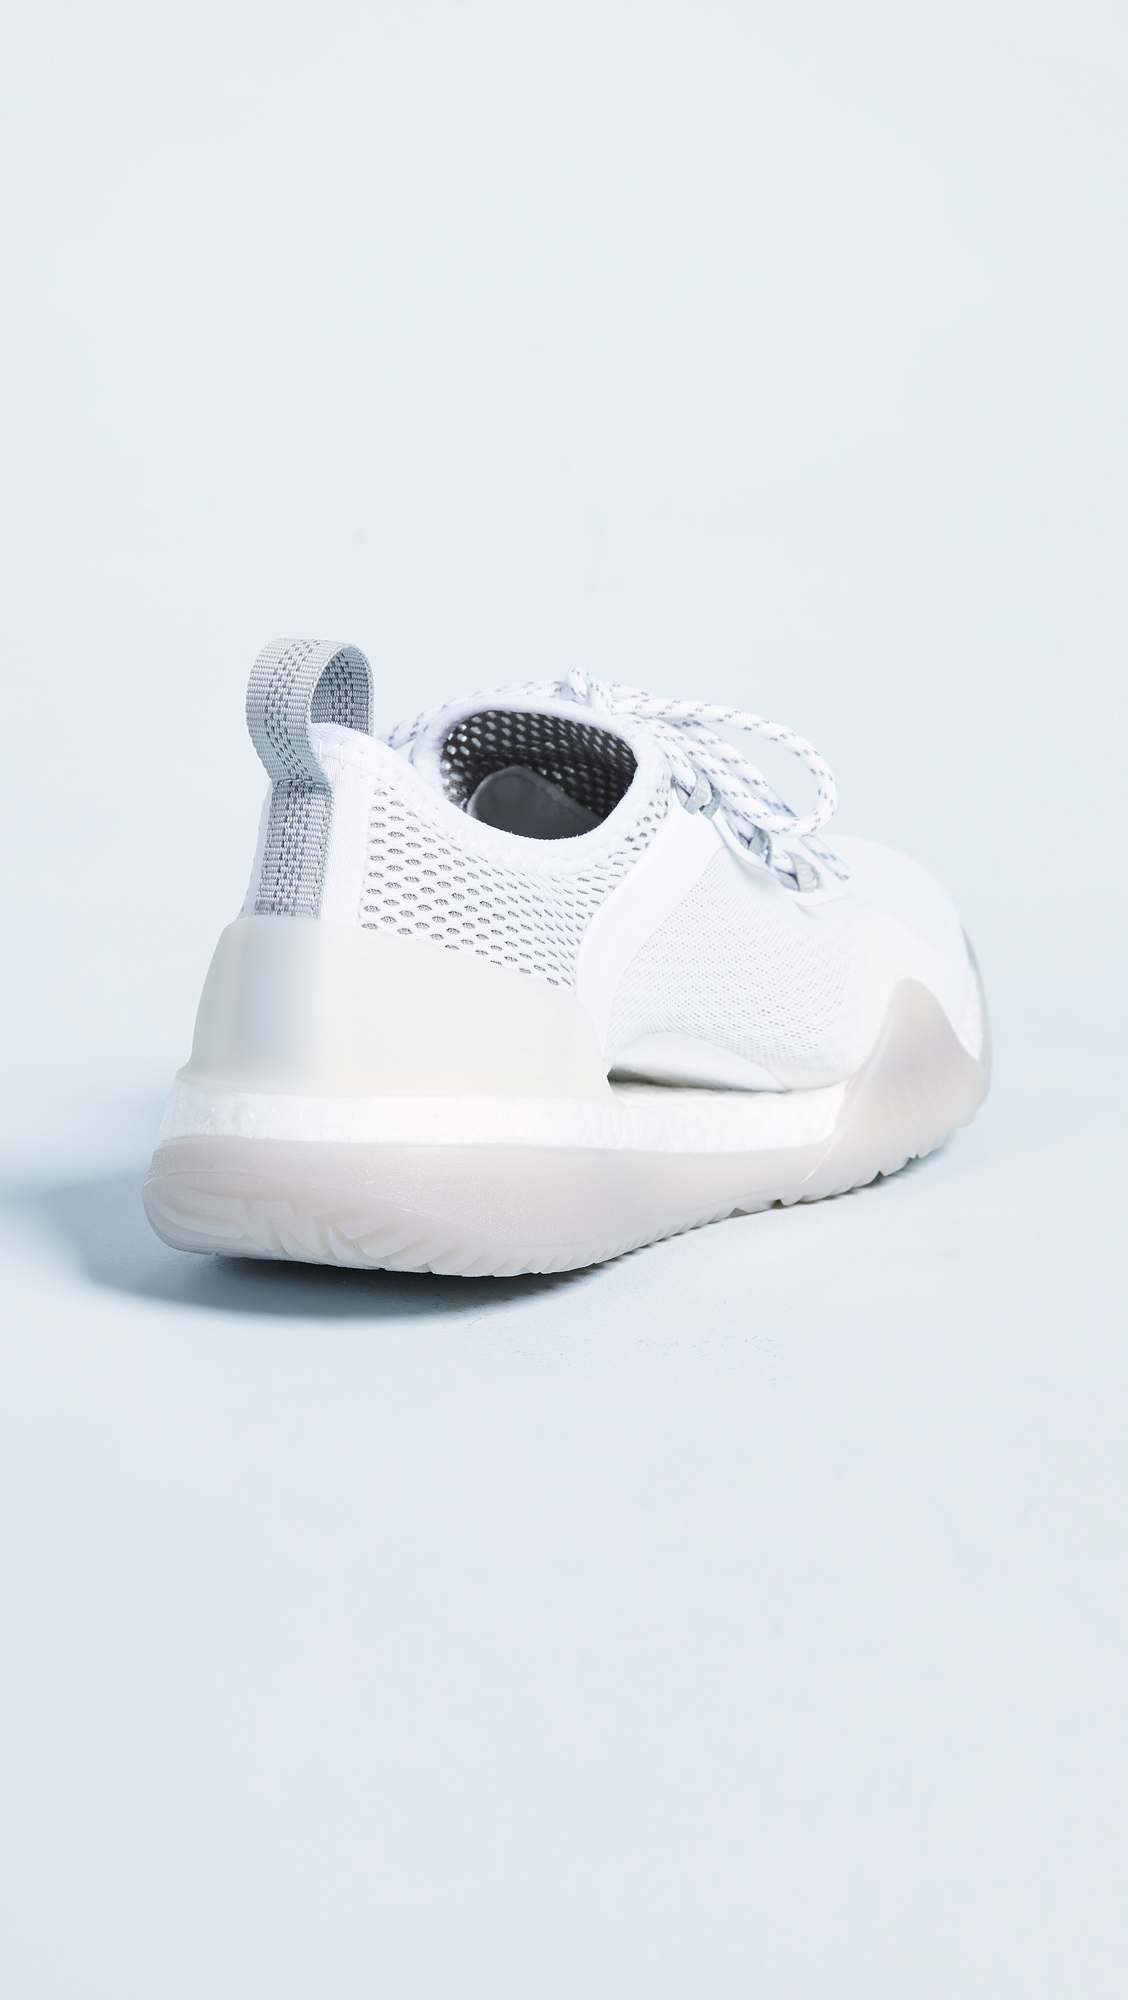 6177a6b5ff75b adidas by Stella McCartney PureBOOST X TR 3.0 Sneakers